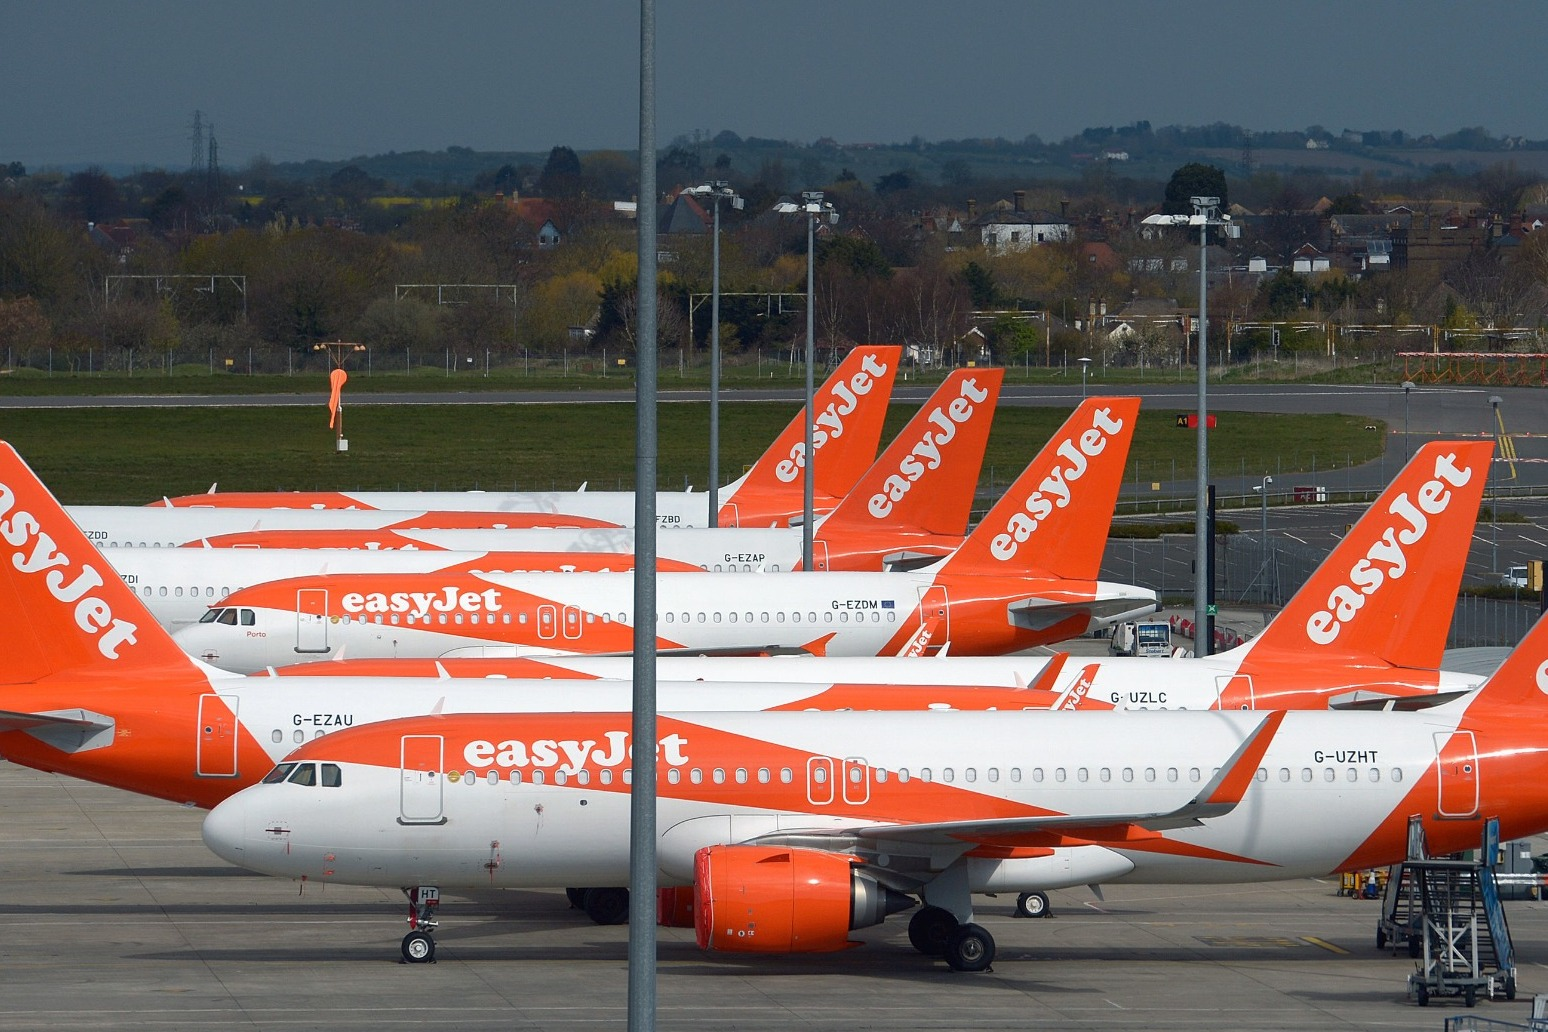 Thousands of easyJet staff to lose jobs as airline cuts workforce by up to 30%